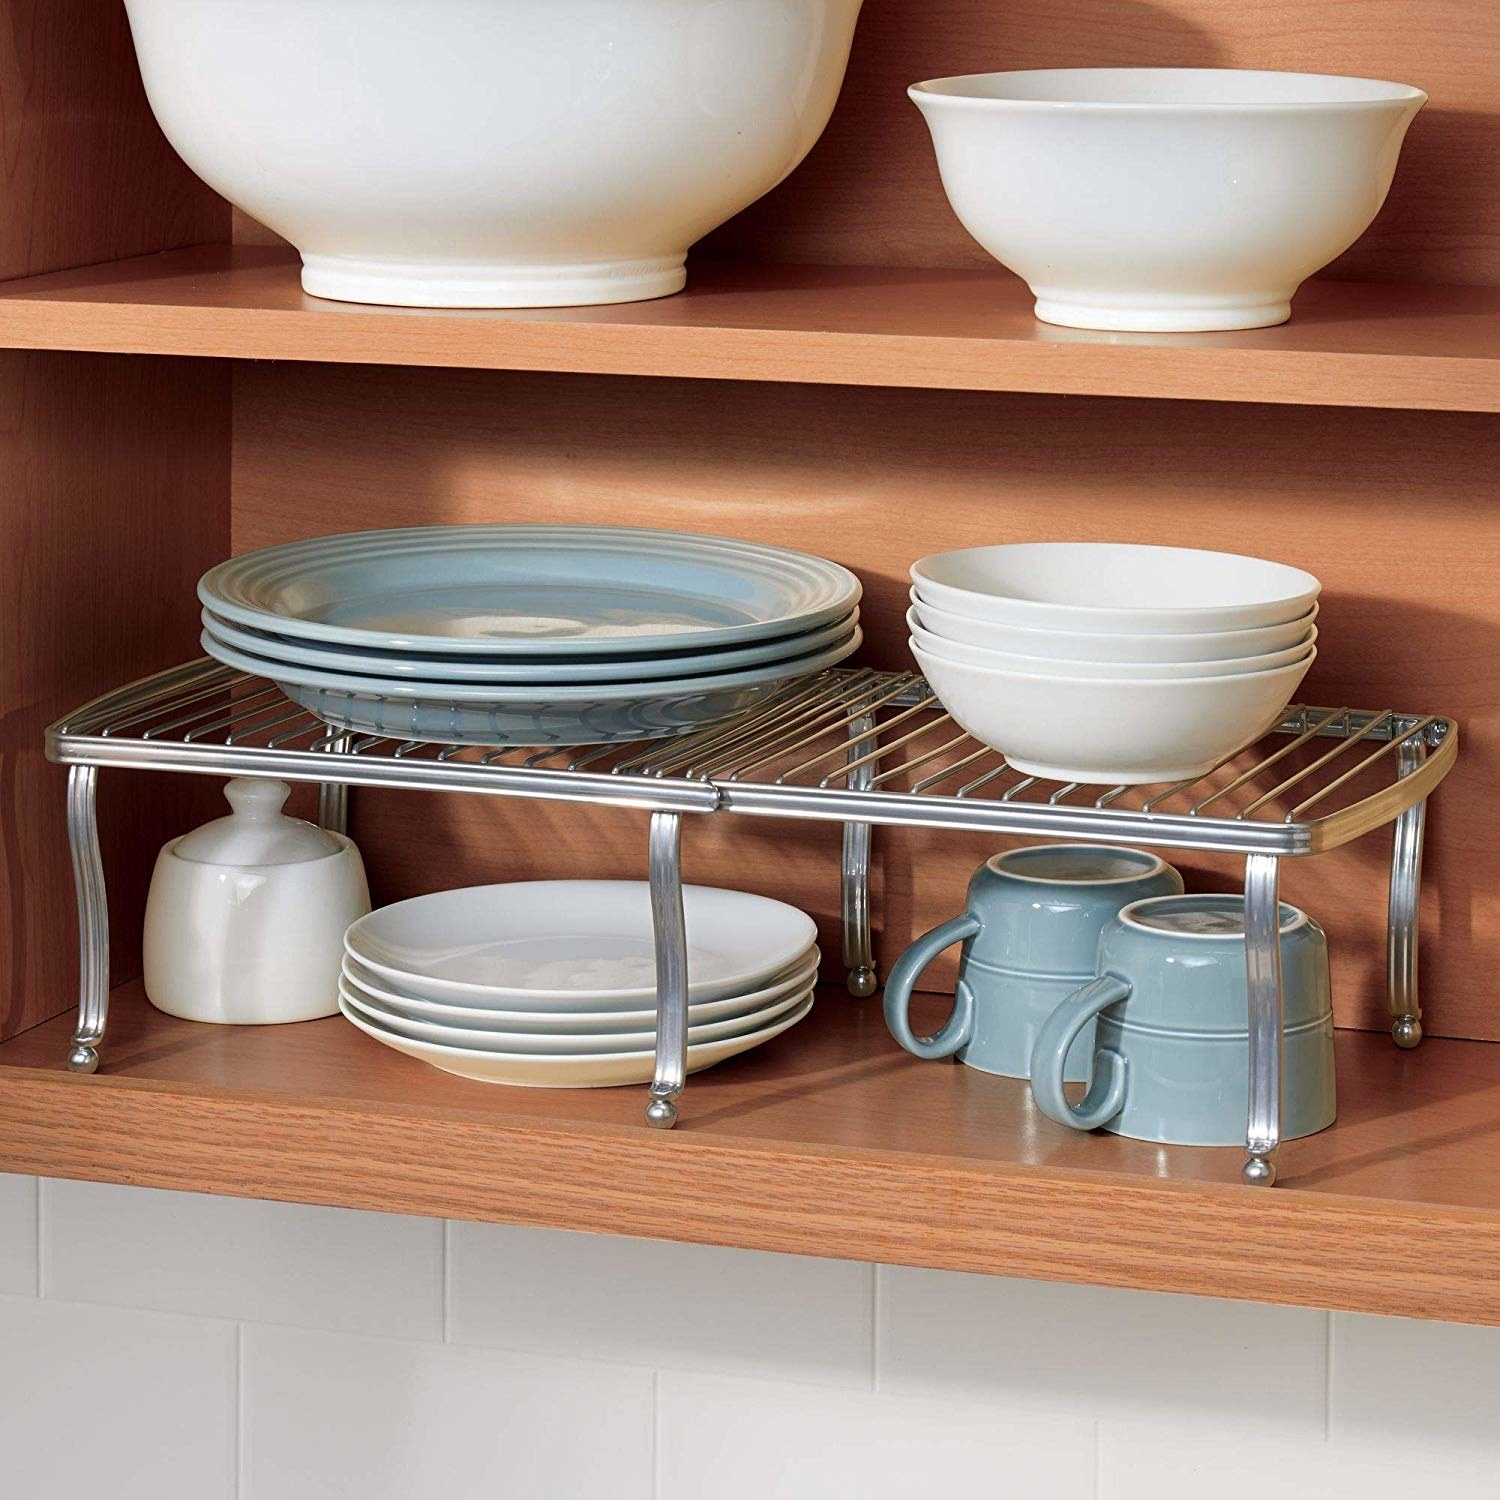 silver wire expanding shelves holding plates and bowls